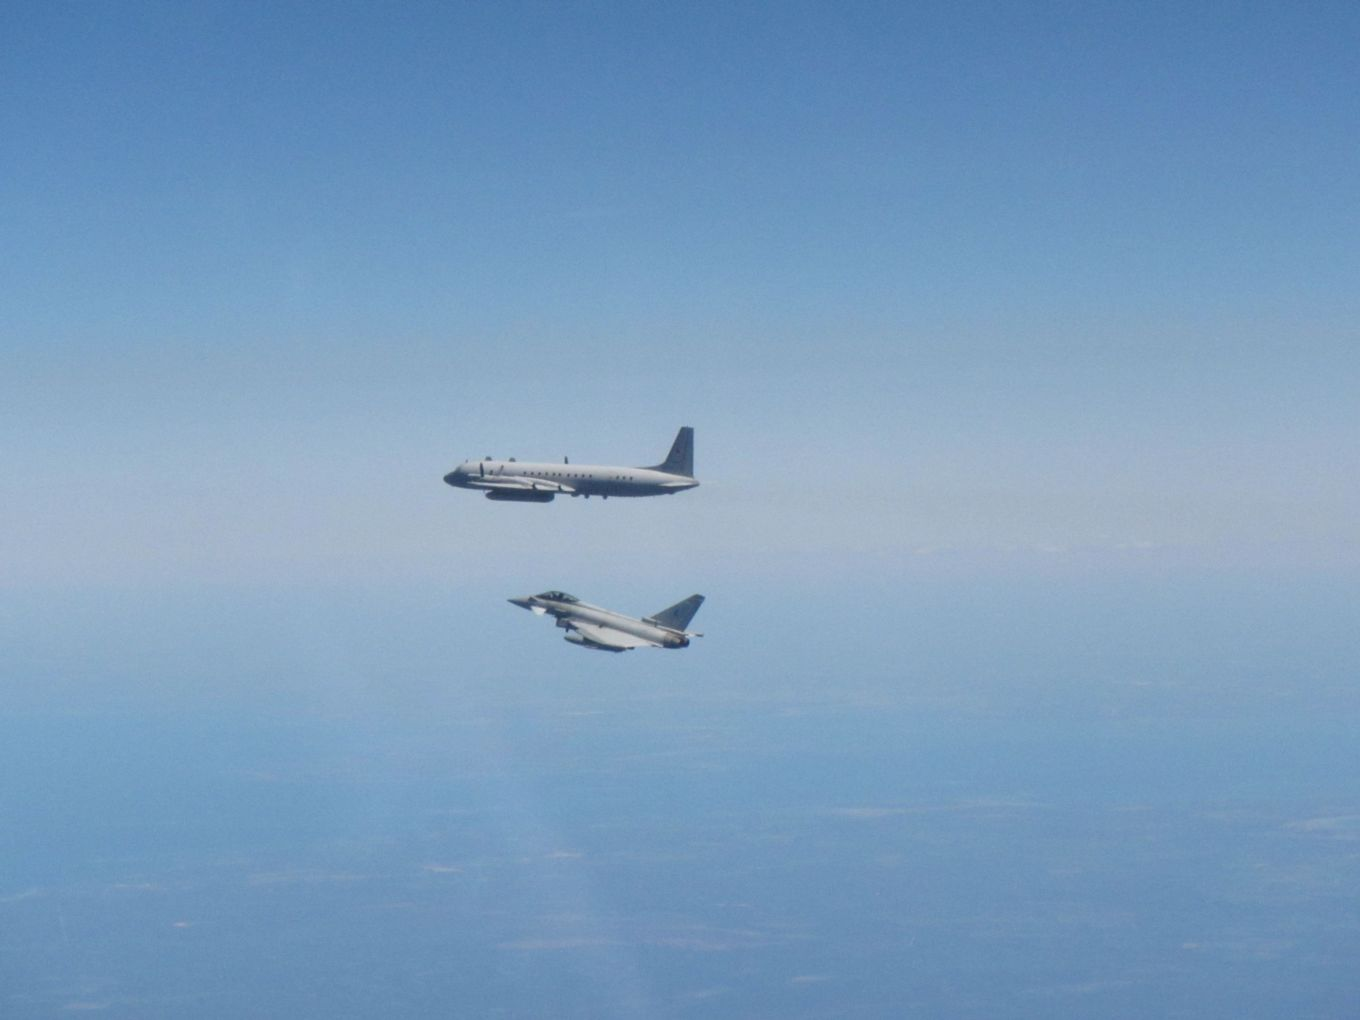 RAF Typhoons Scrambled In Lithuania To Intercept Russian IL-20 COOT ISR Aircraft